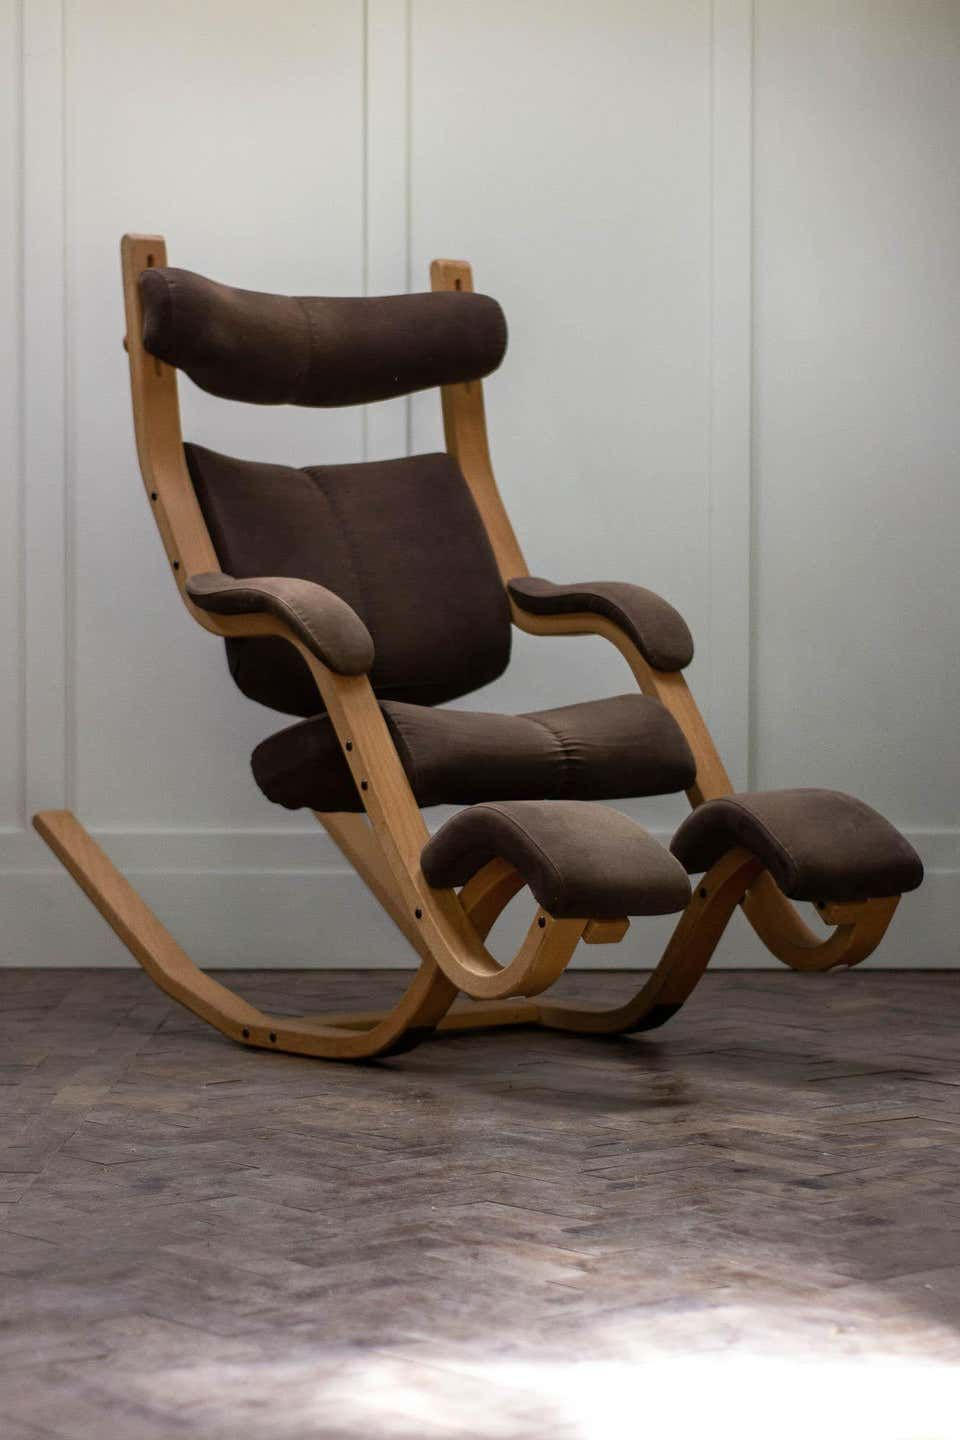 Peter Opsvik Recliner Chair For Stokke Recliner Chair Chair Ergonomic Chair